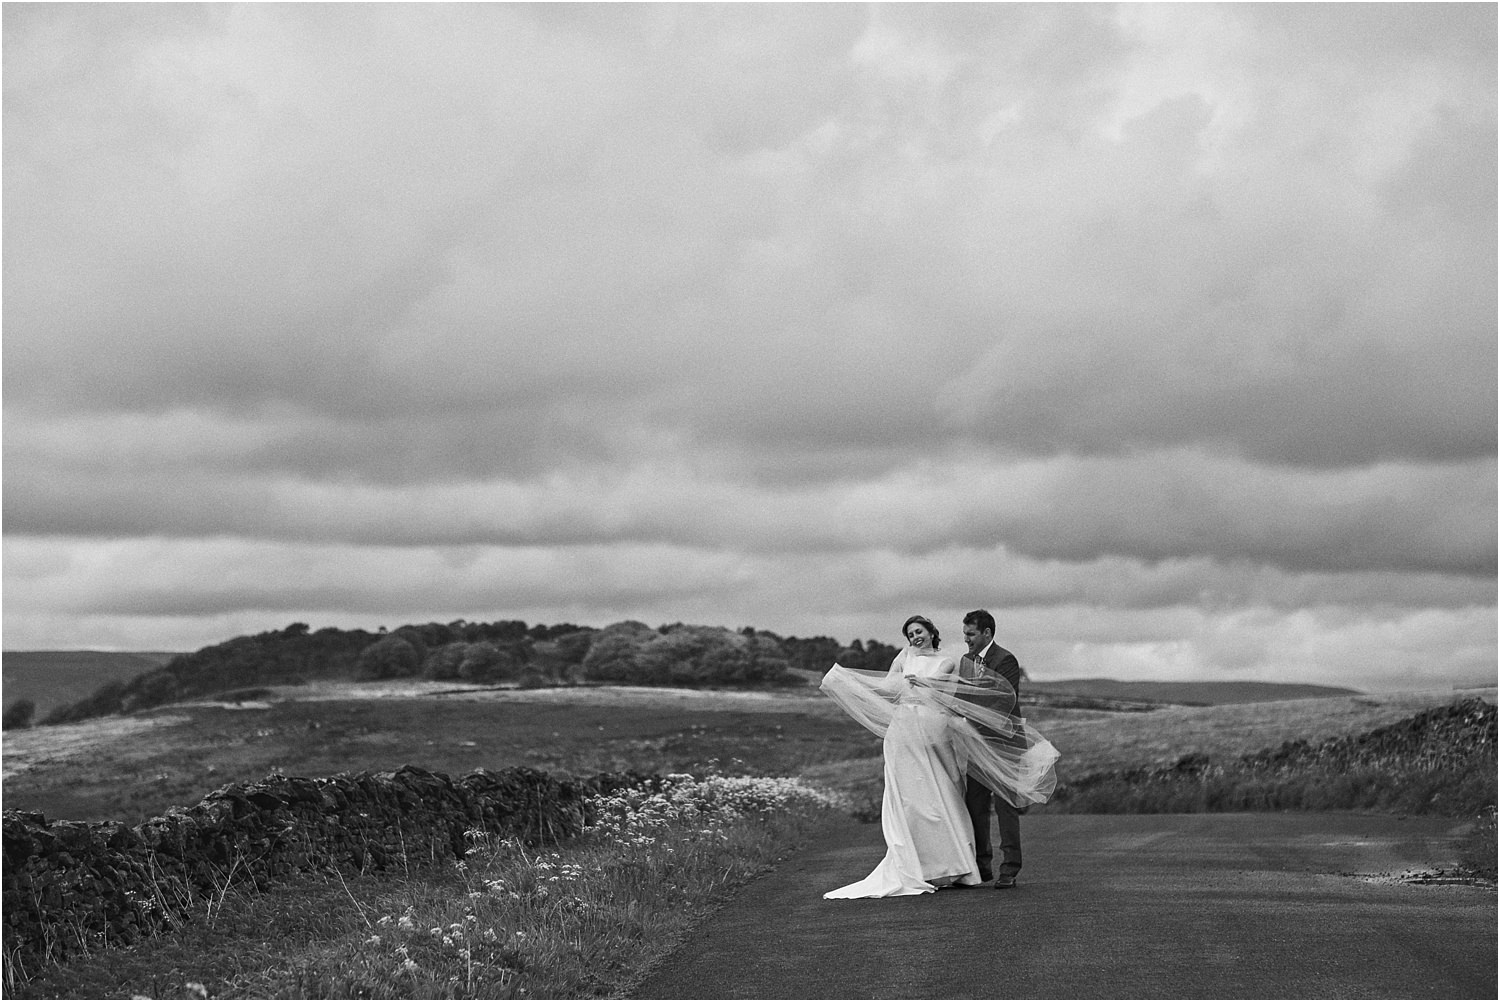 Bride and groom on rural Lancashire lane with veil blowing in the wind